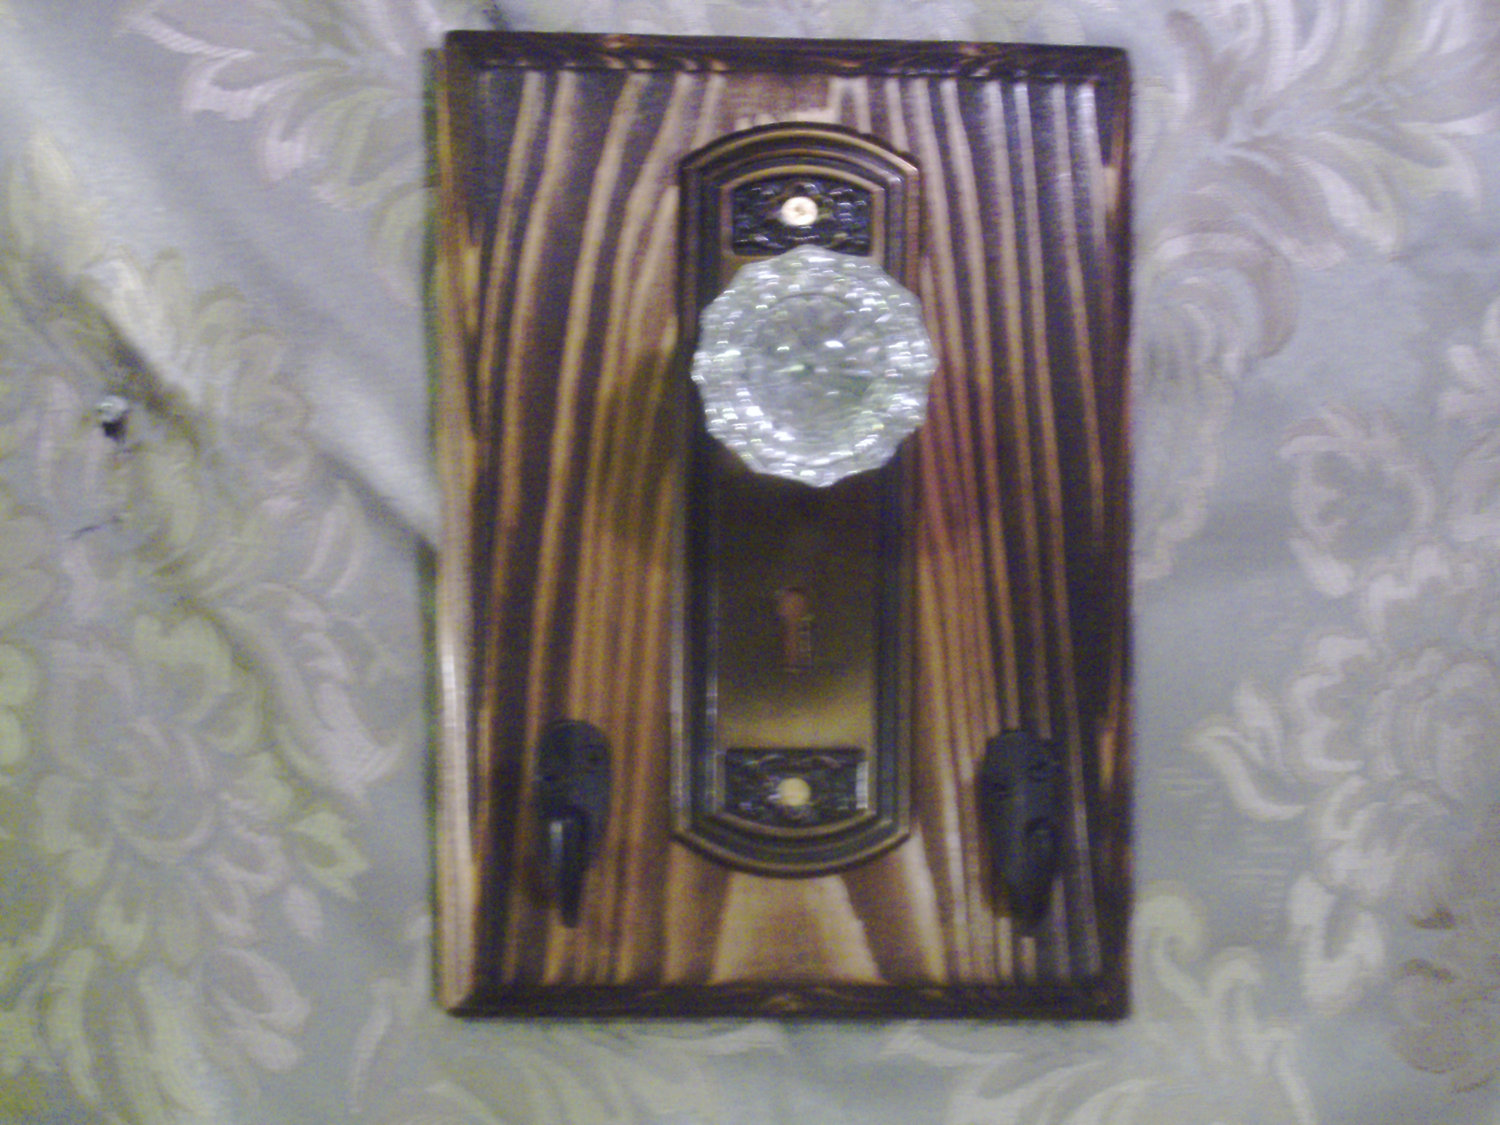 door knob coat rack photo - 5